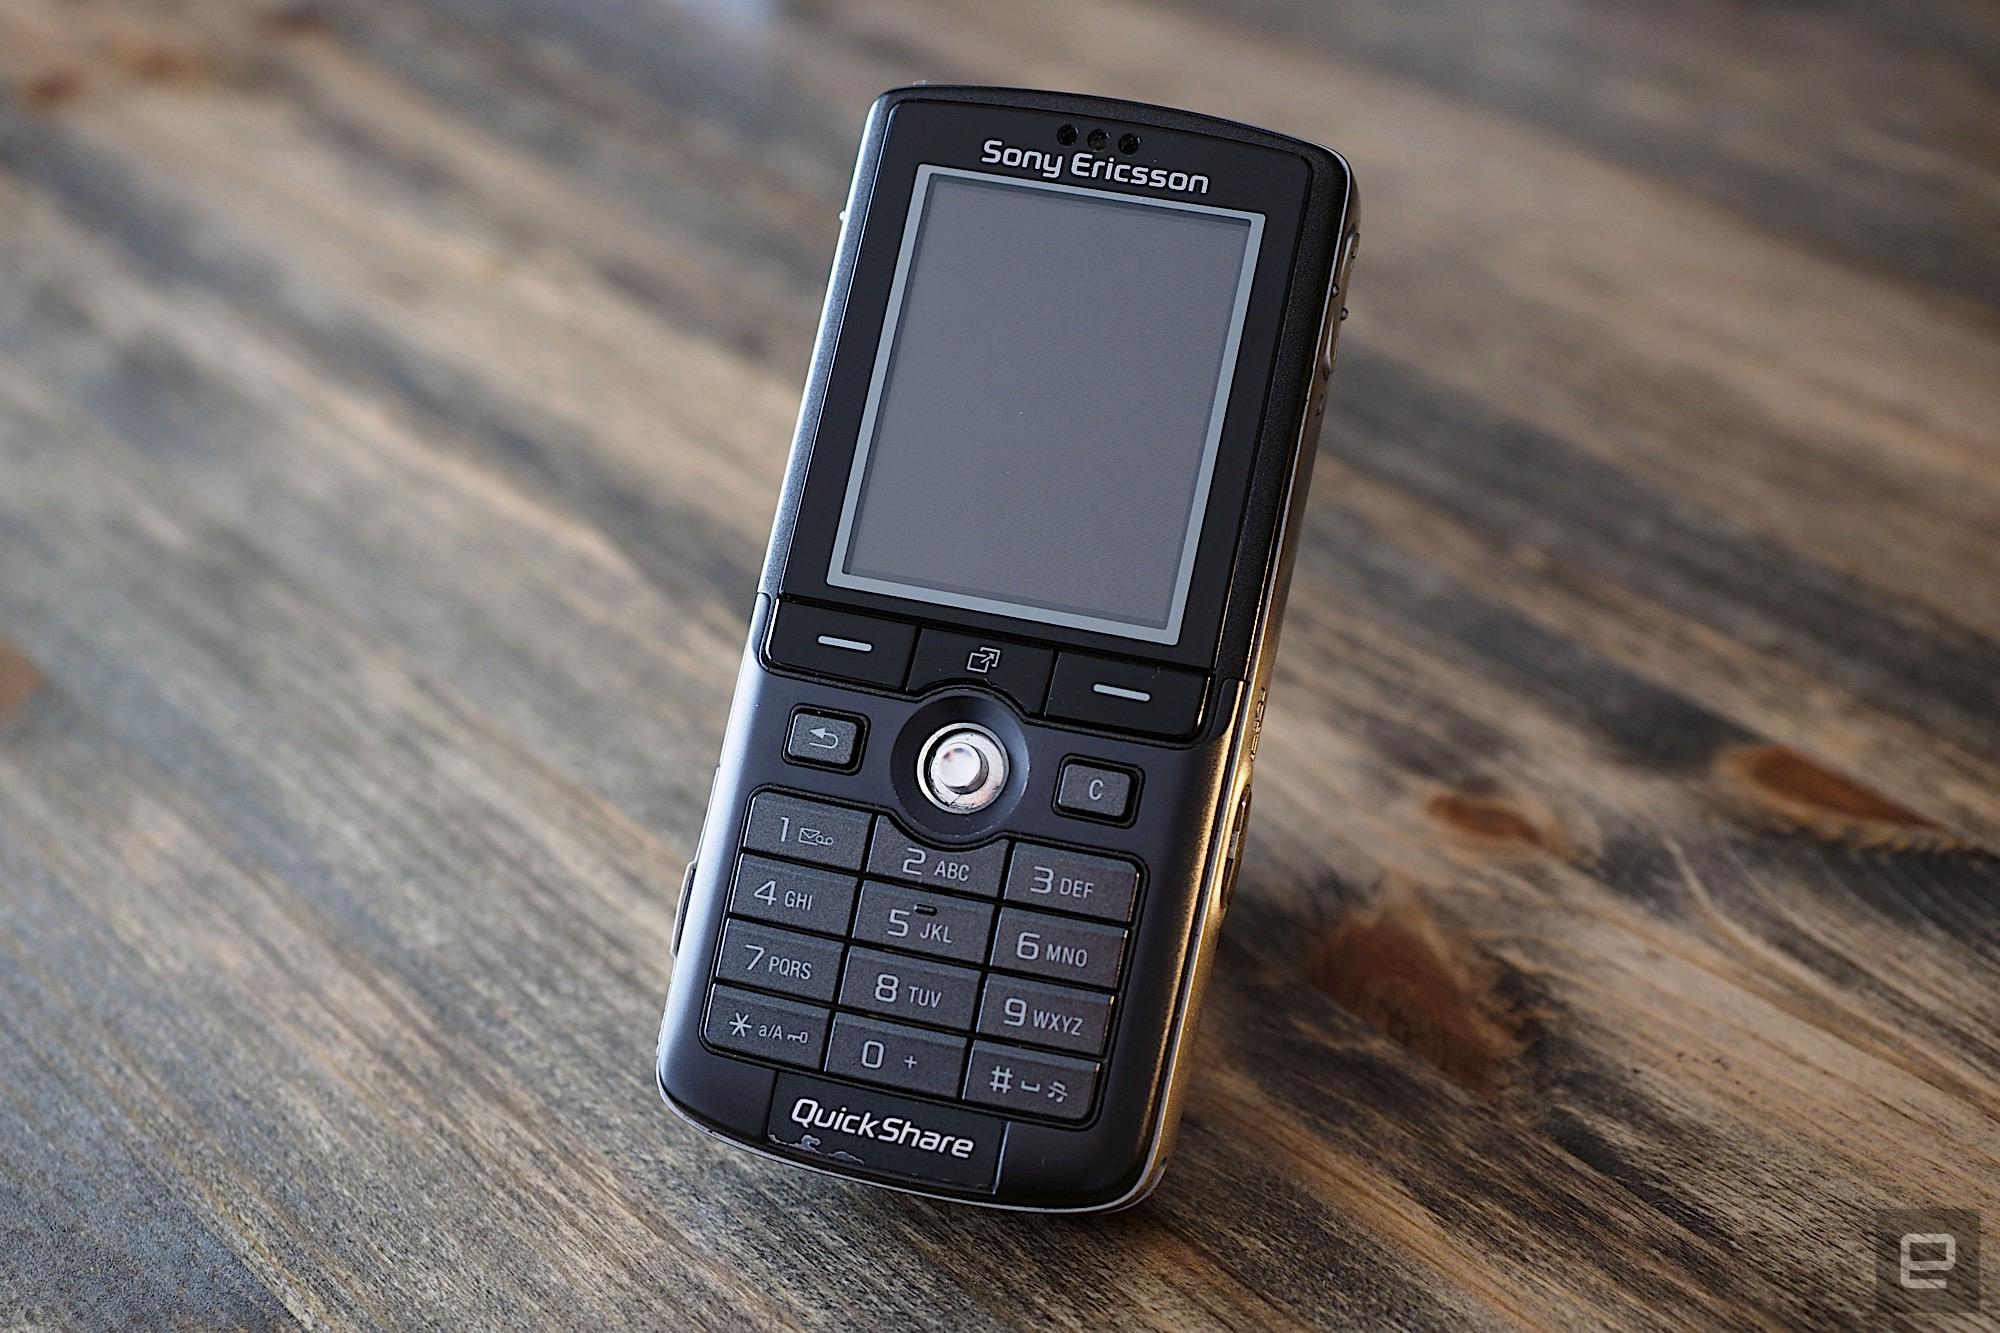 An utterly gorgeous hero shot of Sony Ericsson's K750i from 2005.